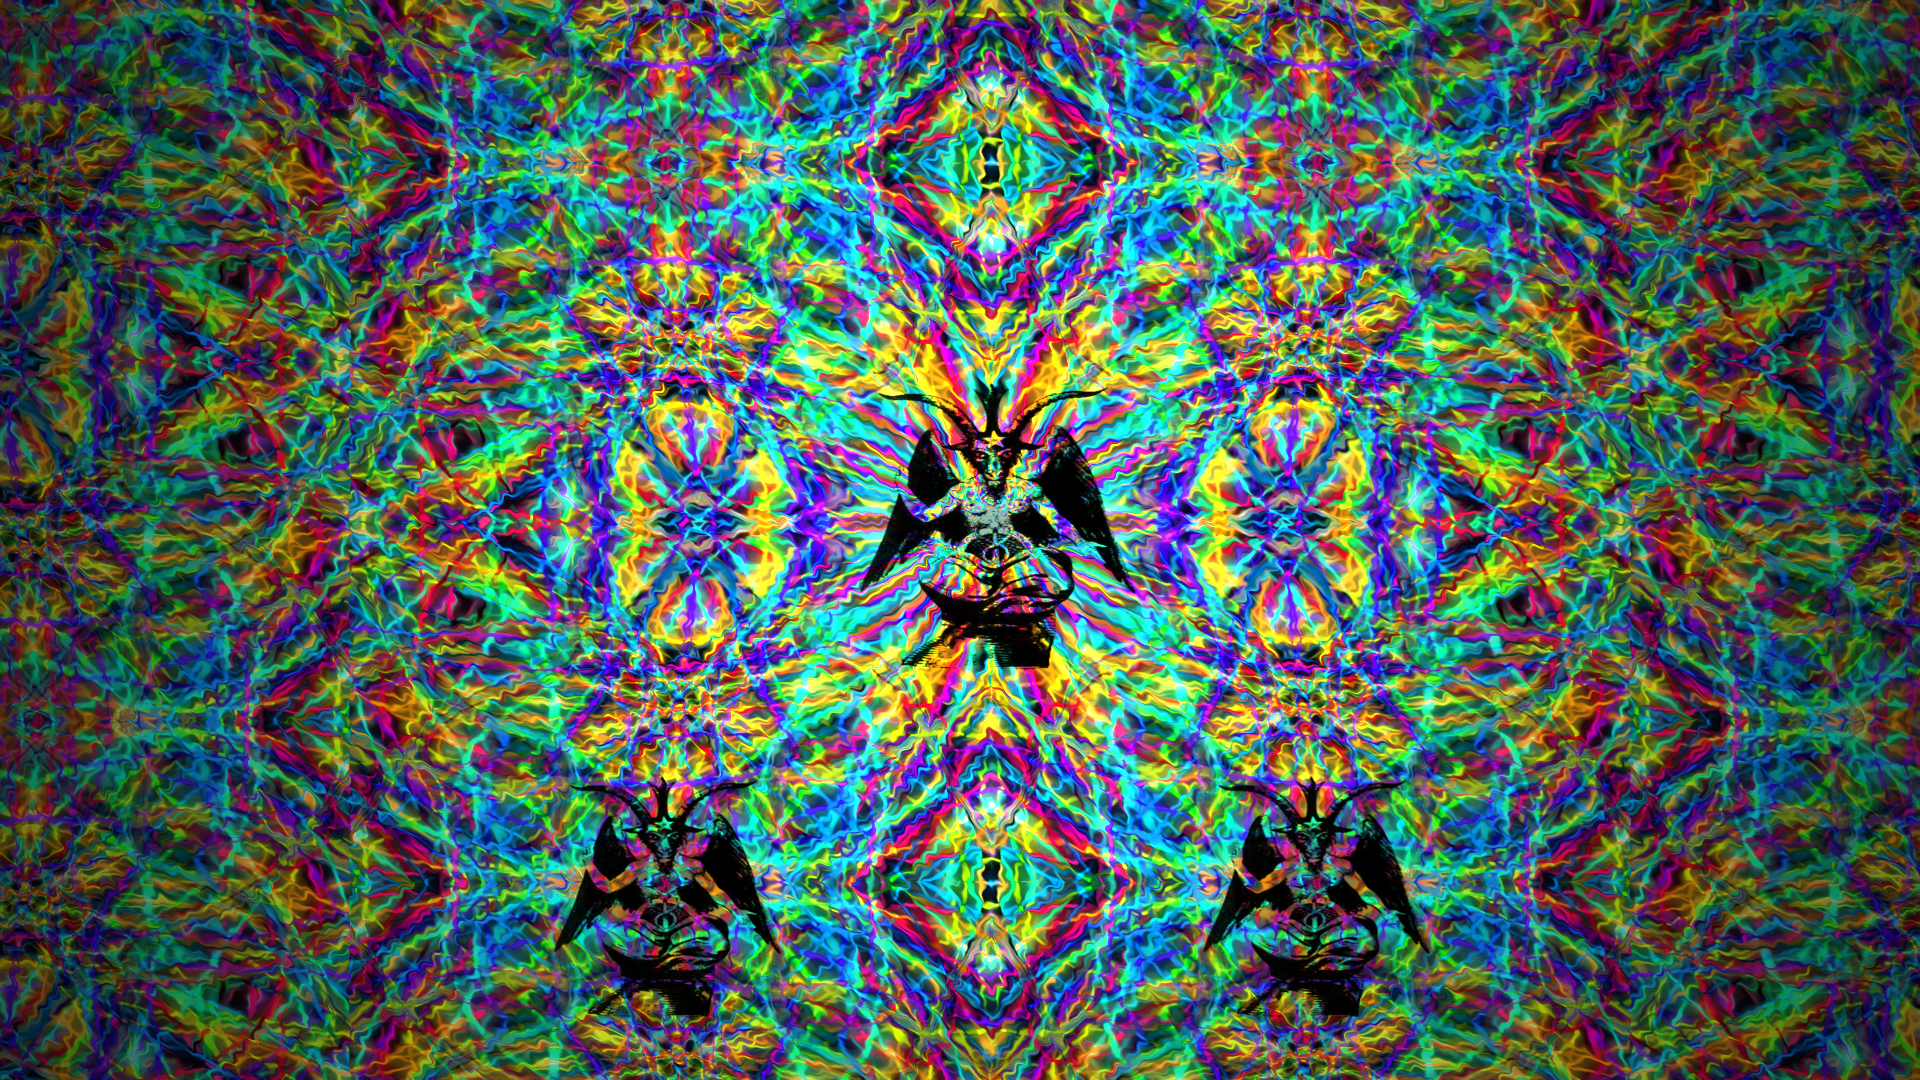 Psychedelic Wallpaper 1080p 1920x1080